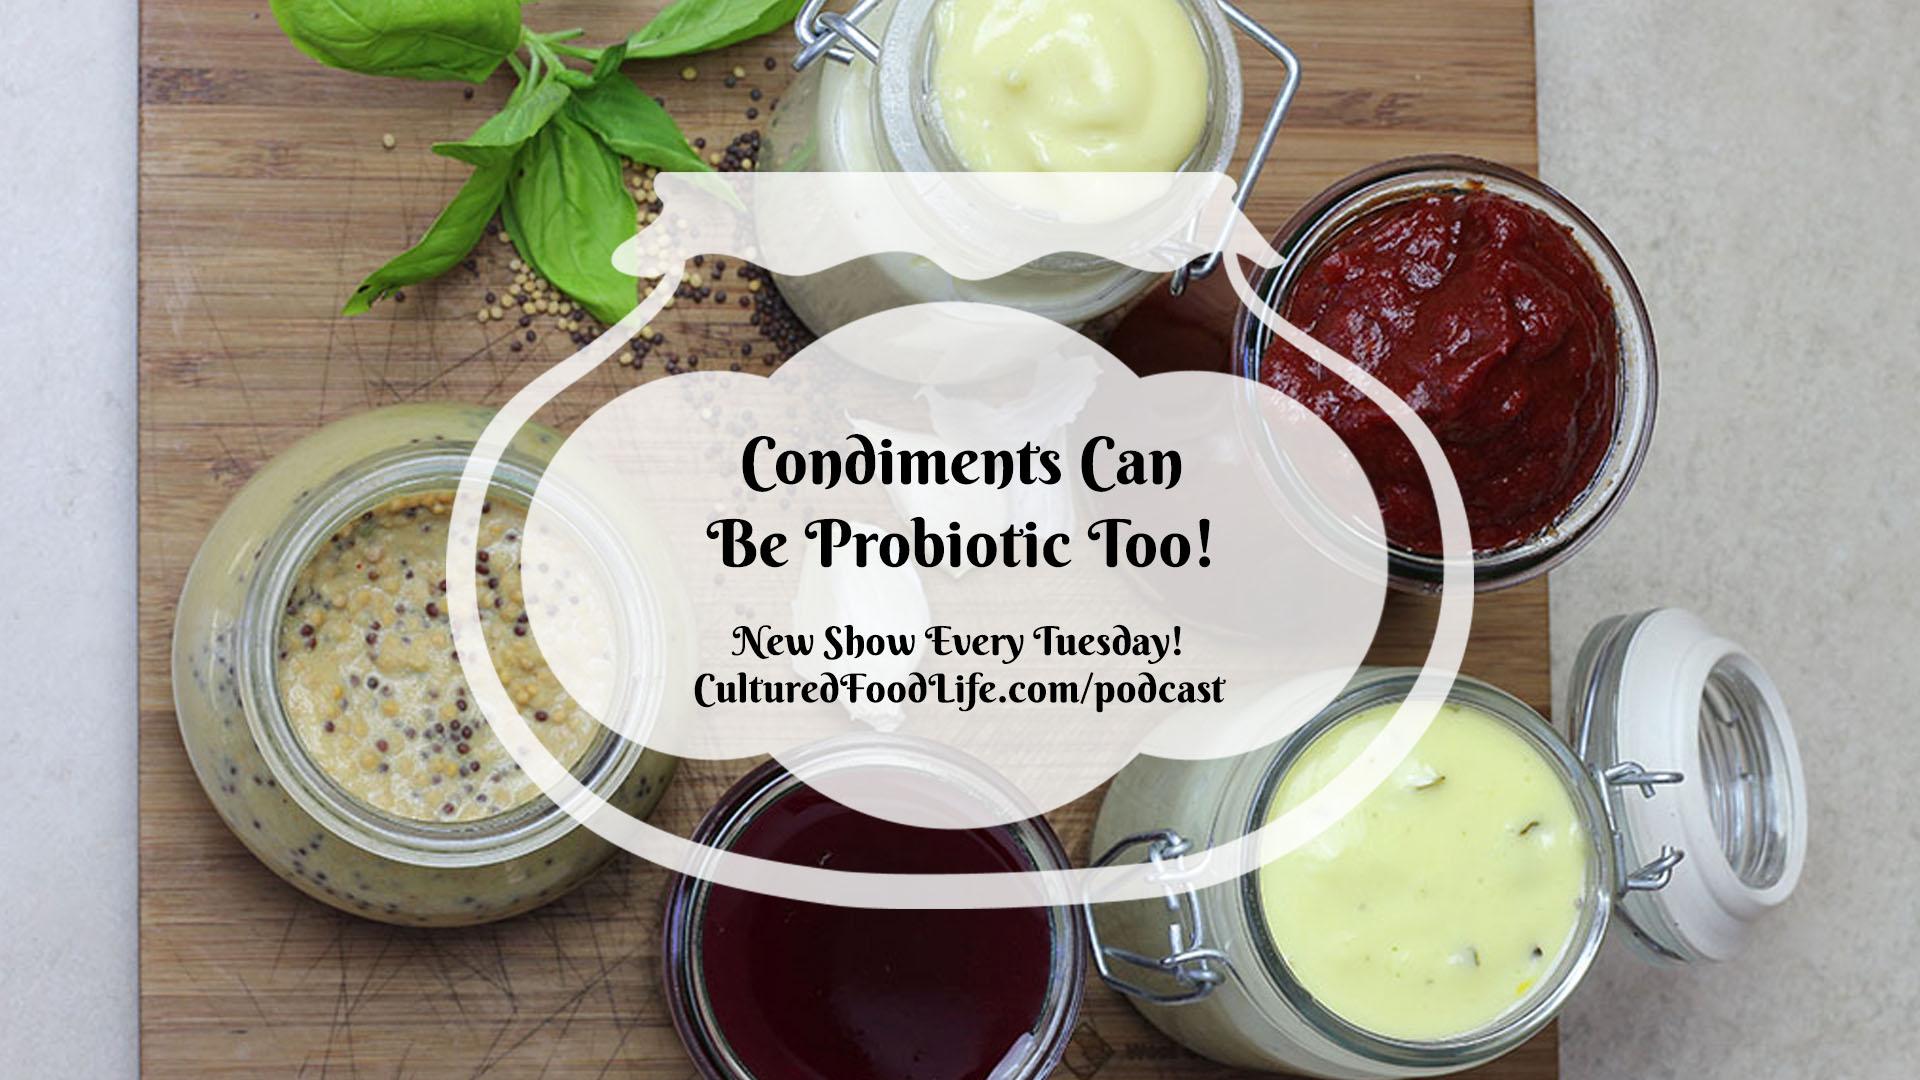 Condiments Can Be Probiotic Too Full